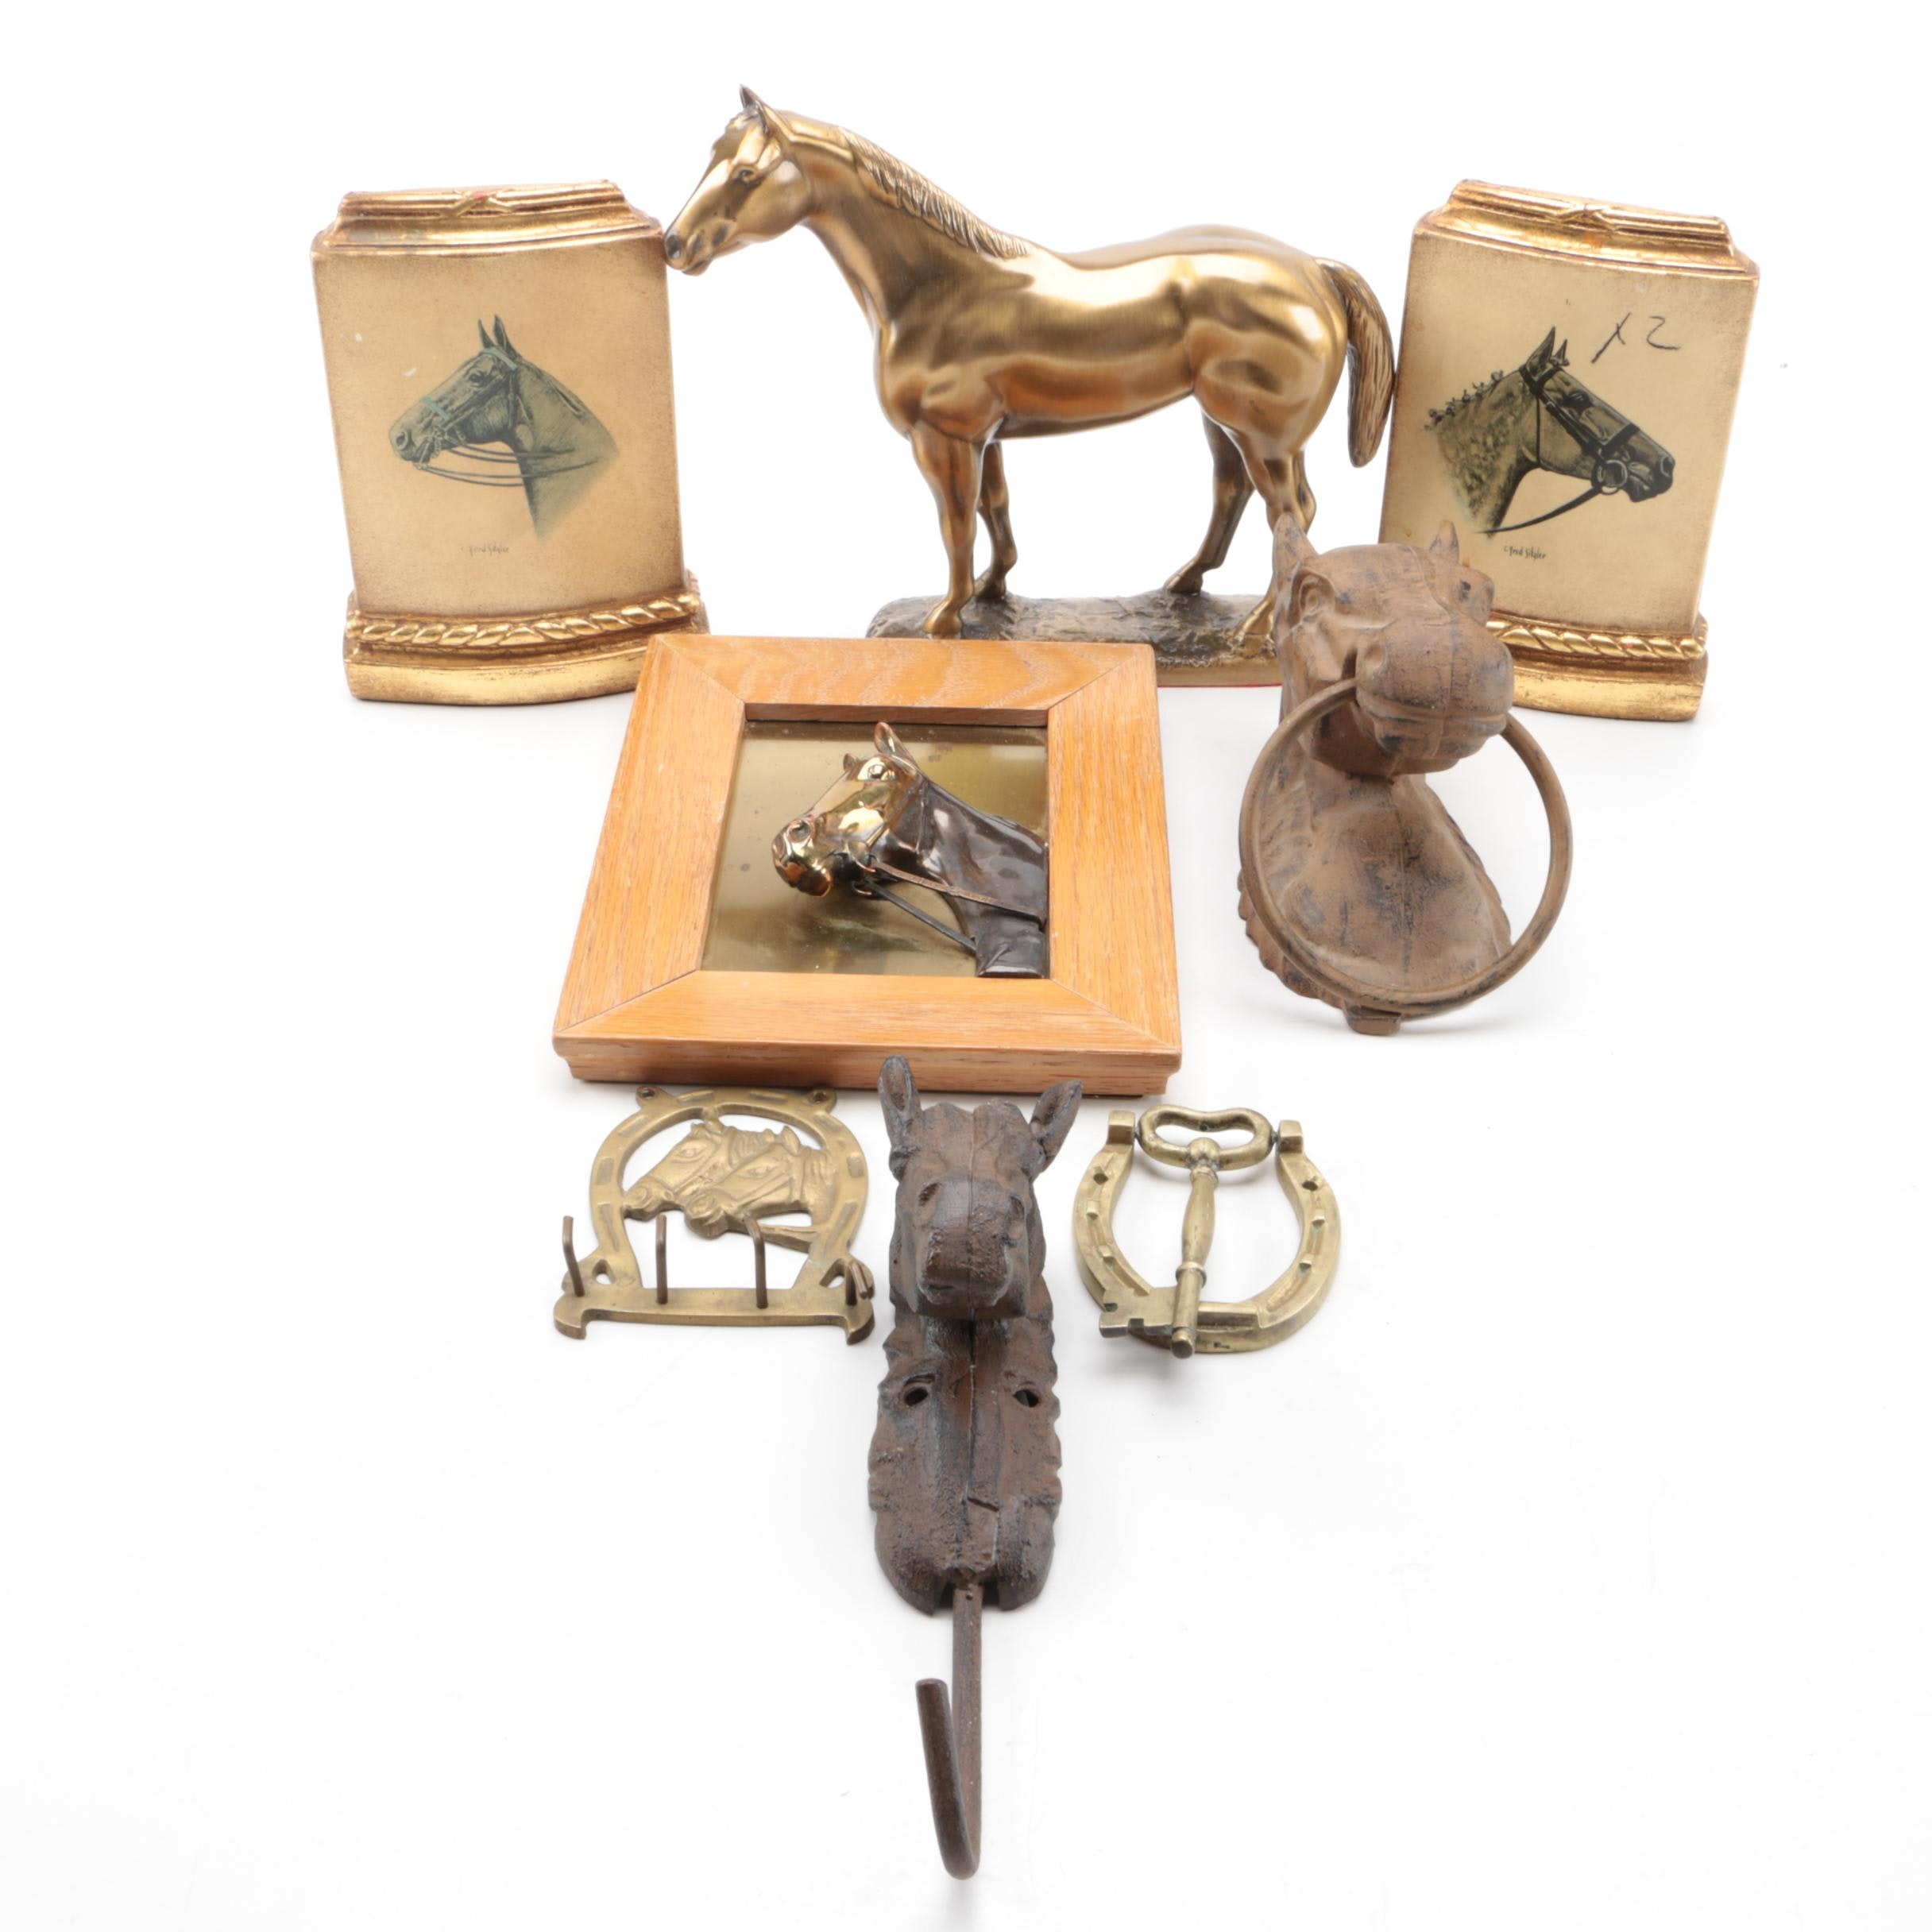 Collection of Equestrian-Theme Decorative Items